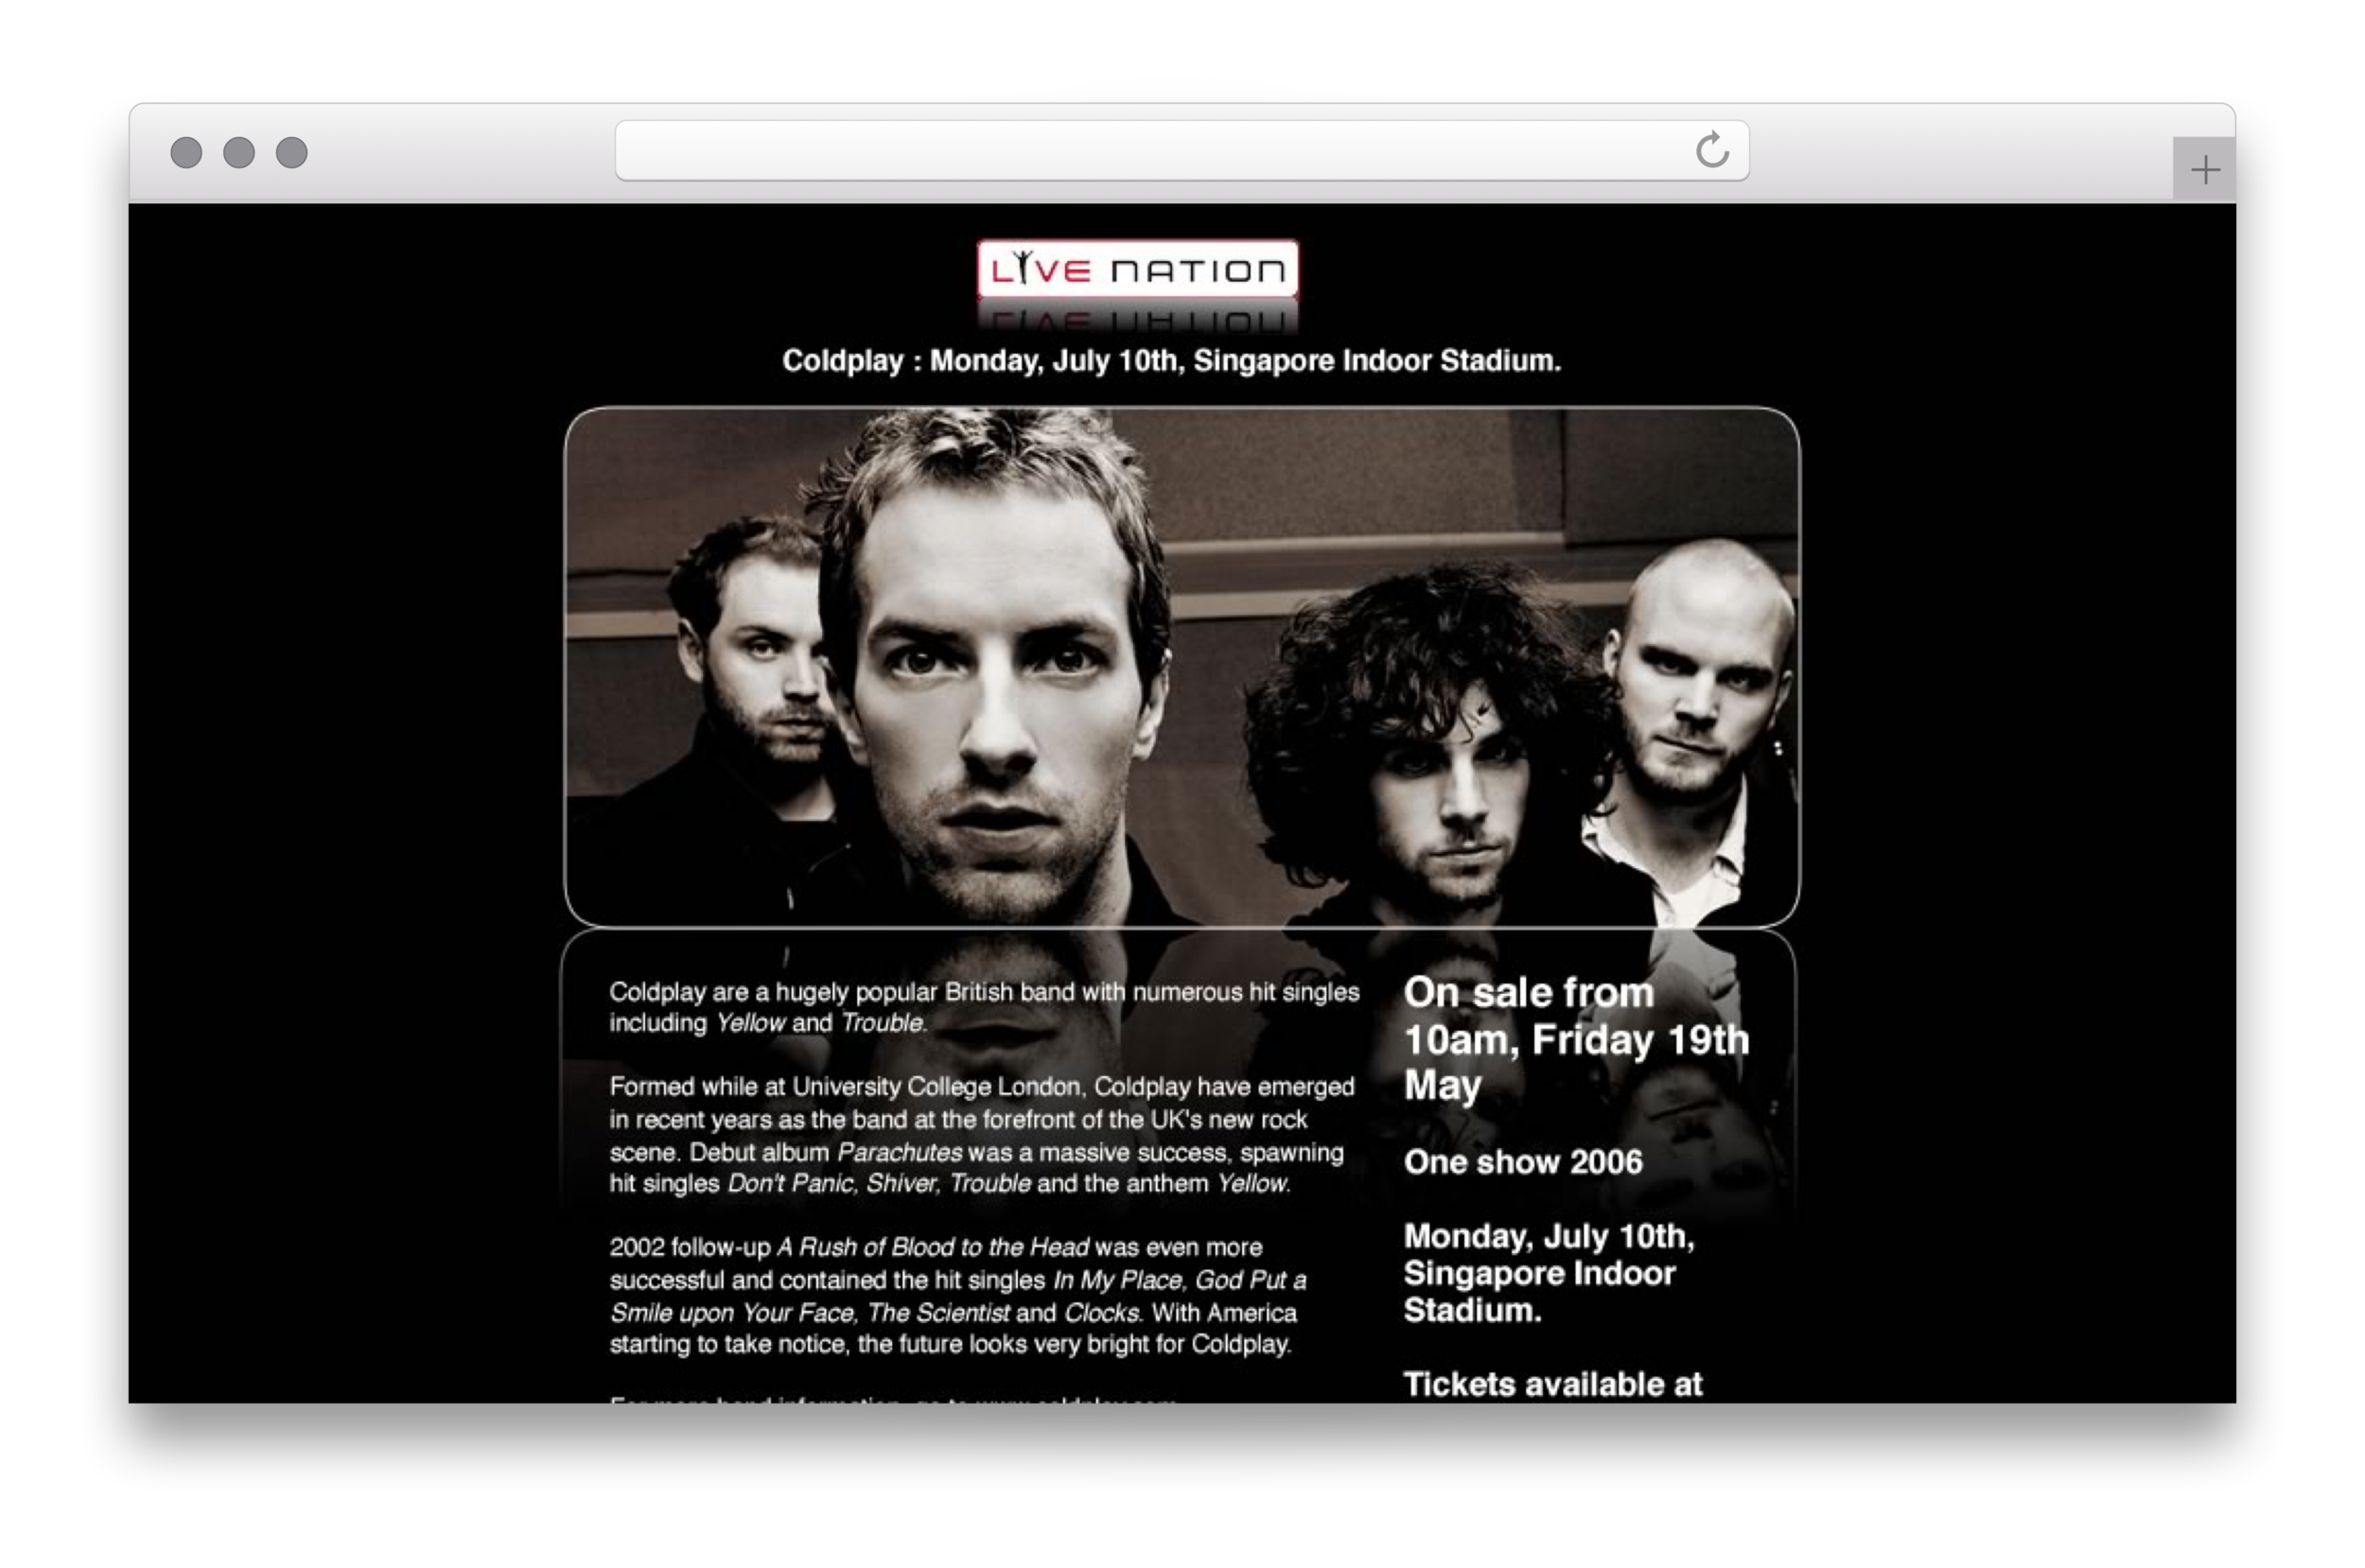 A HTML email for Livenation promoting a Coldplay presale